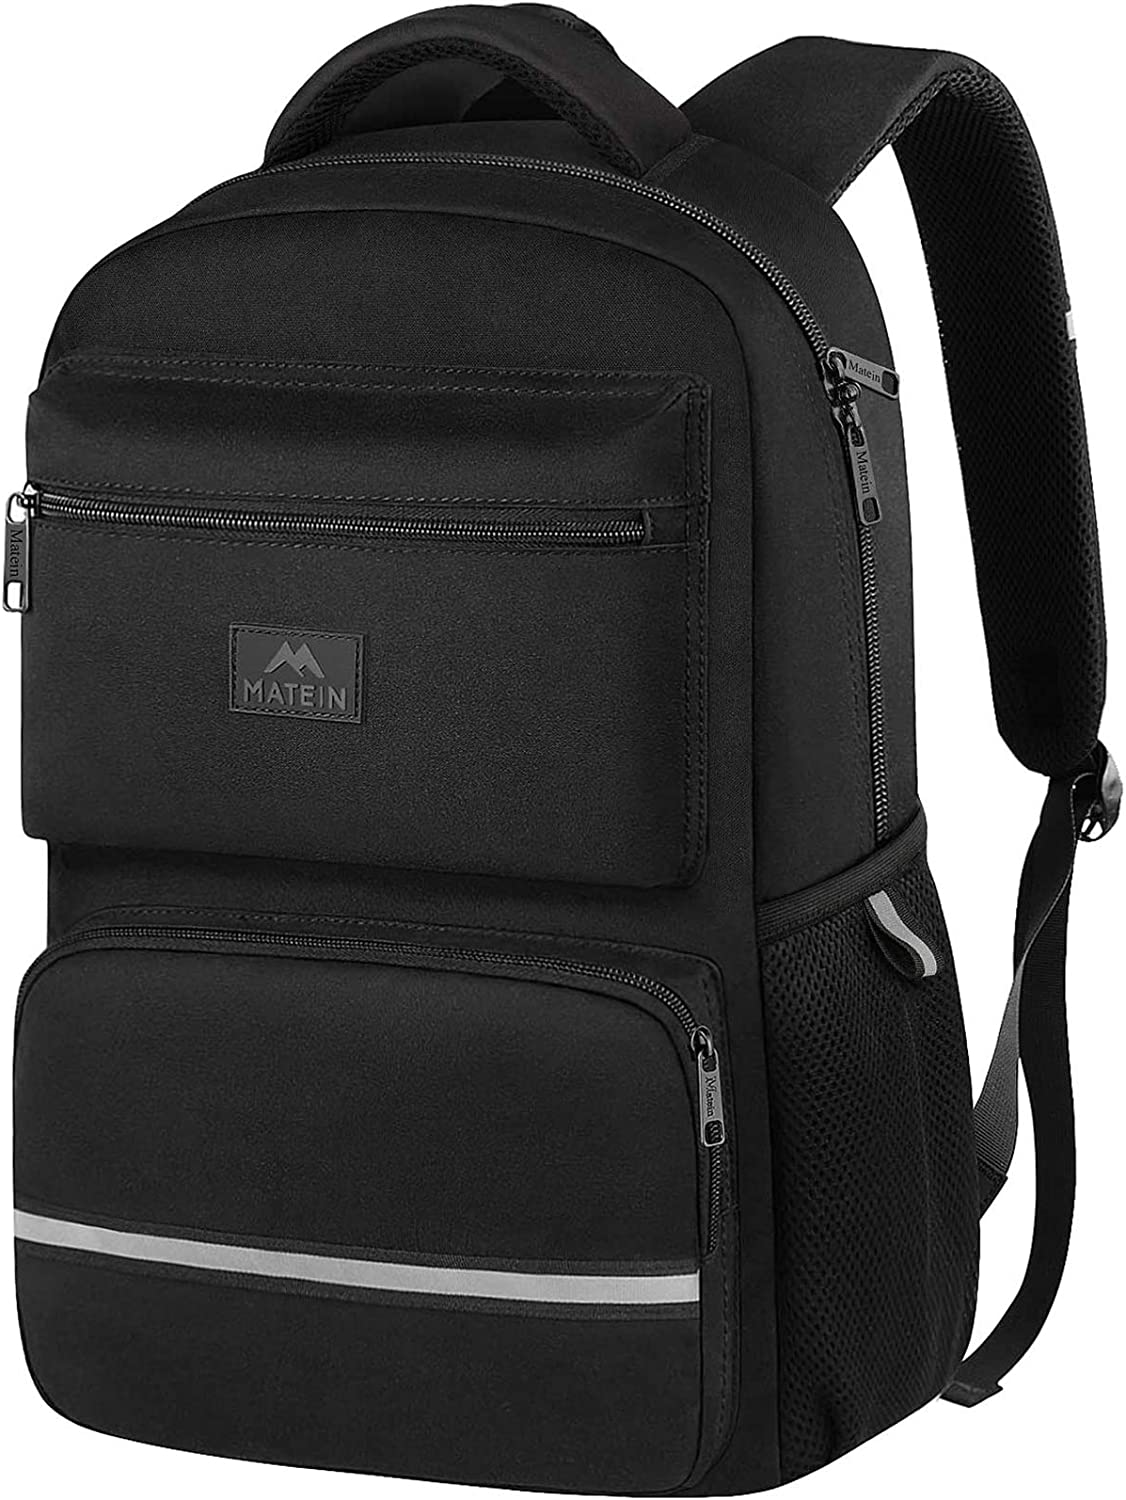 School Backpack, Lightweight Waterproof Middle School Student Laptop Backpacks for Teen, Boys and Girls, Cute Computer Bookbags for Men, Women Fits 15 Inch Laptop and Notebook, Black